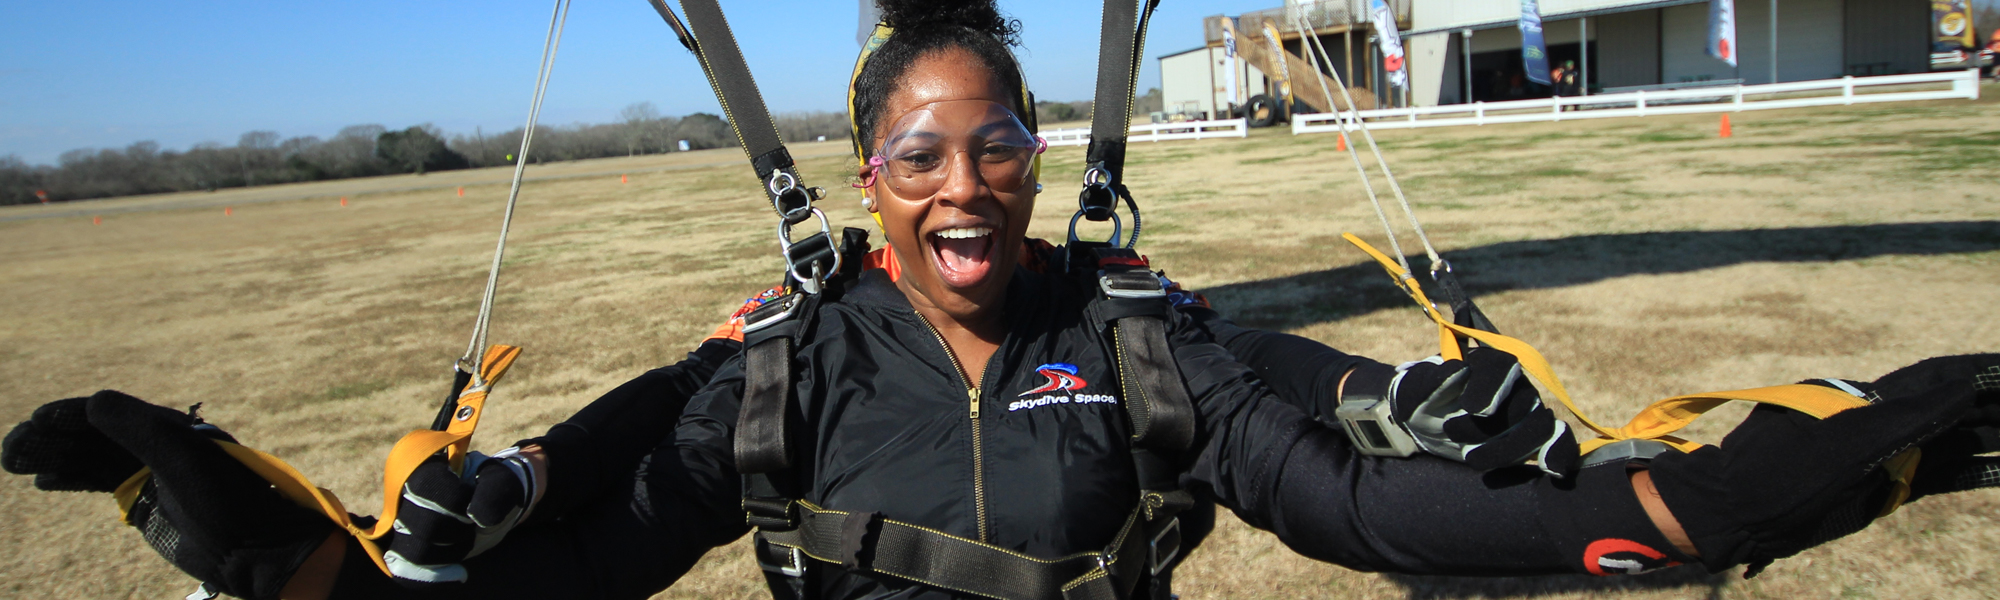 Tandem Skydiving: Common Questions - Skydive Spaceland Florida